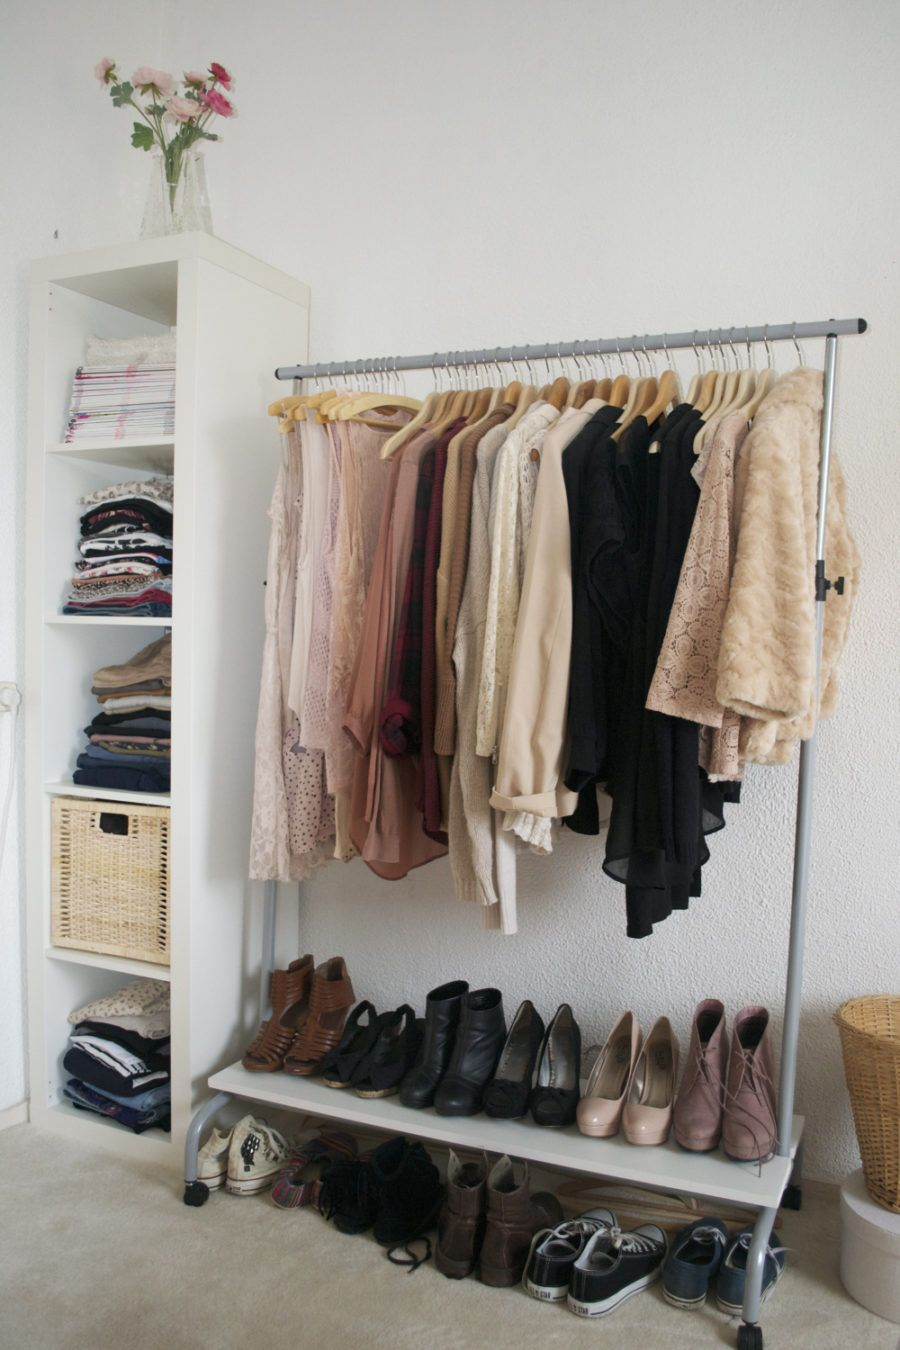 30 Chic And Modern Open Closet Ideas For Displaying Your Wardrobe Closet Designs Closet Bedroom Makeshift Closet